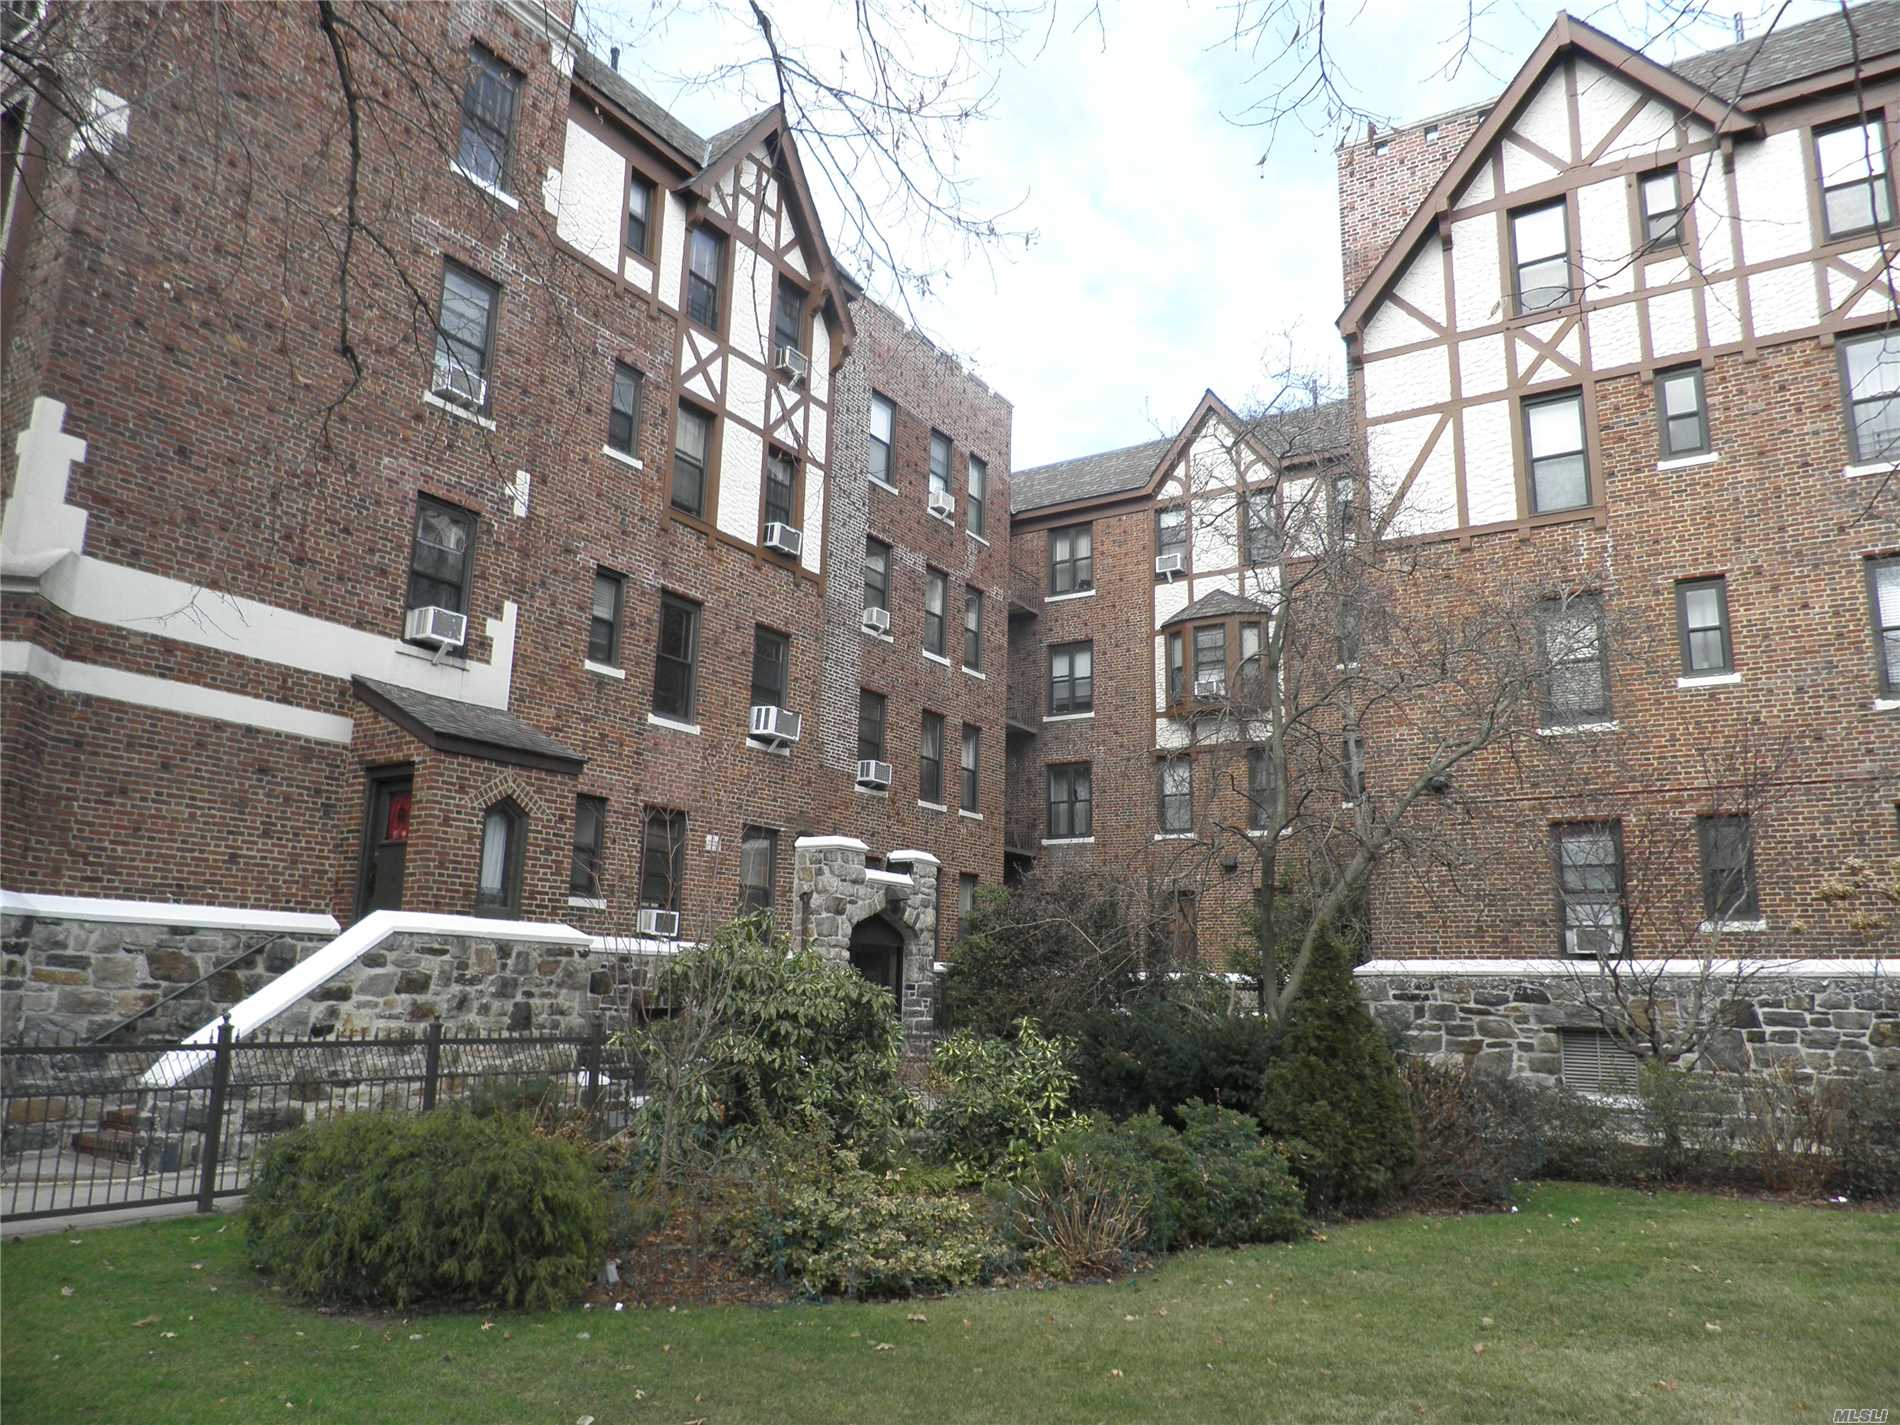 One Flight Up, Very Large Apt. Move In Condt. Cat Friendly. No Flip Tax, Express Qm2 Midtown, Q15 Local.